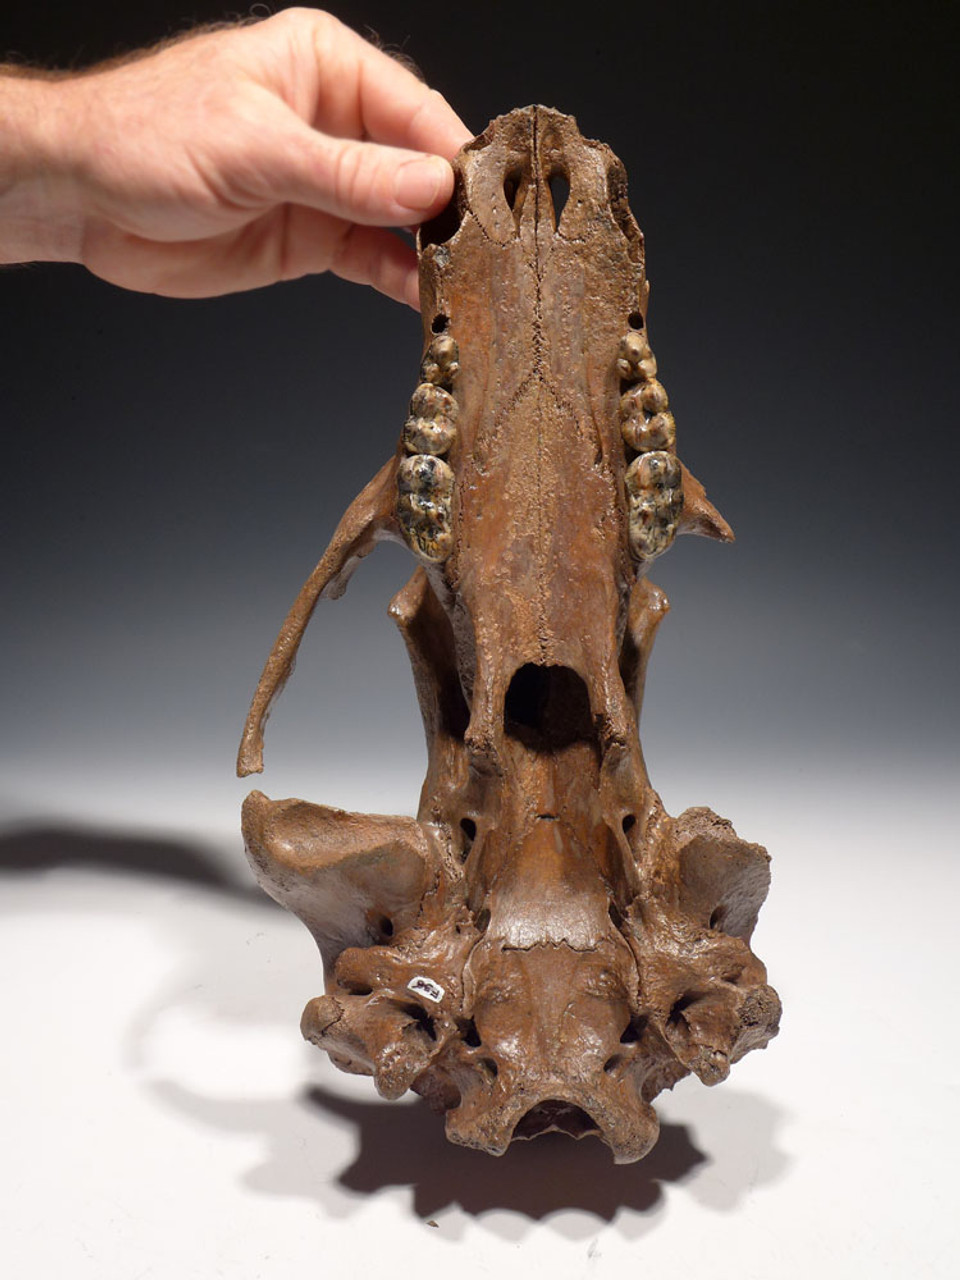 ULTRA RARE URSUS ARCTOS ICE AGE FOSSIL BROWN BEAR SKULL FROM CENTRAL EUROPE *LMX180